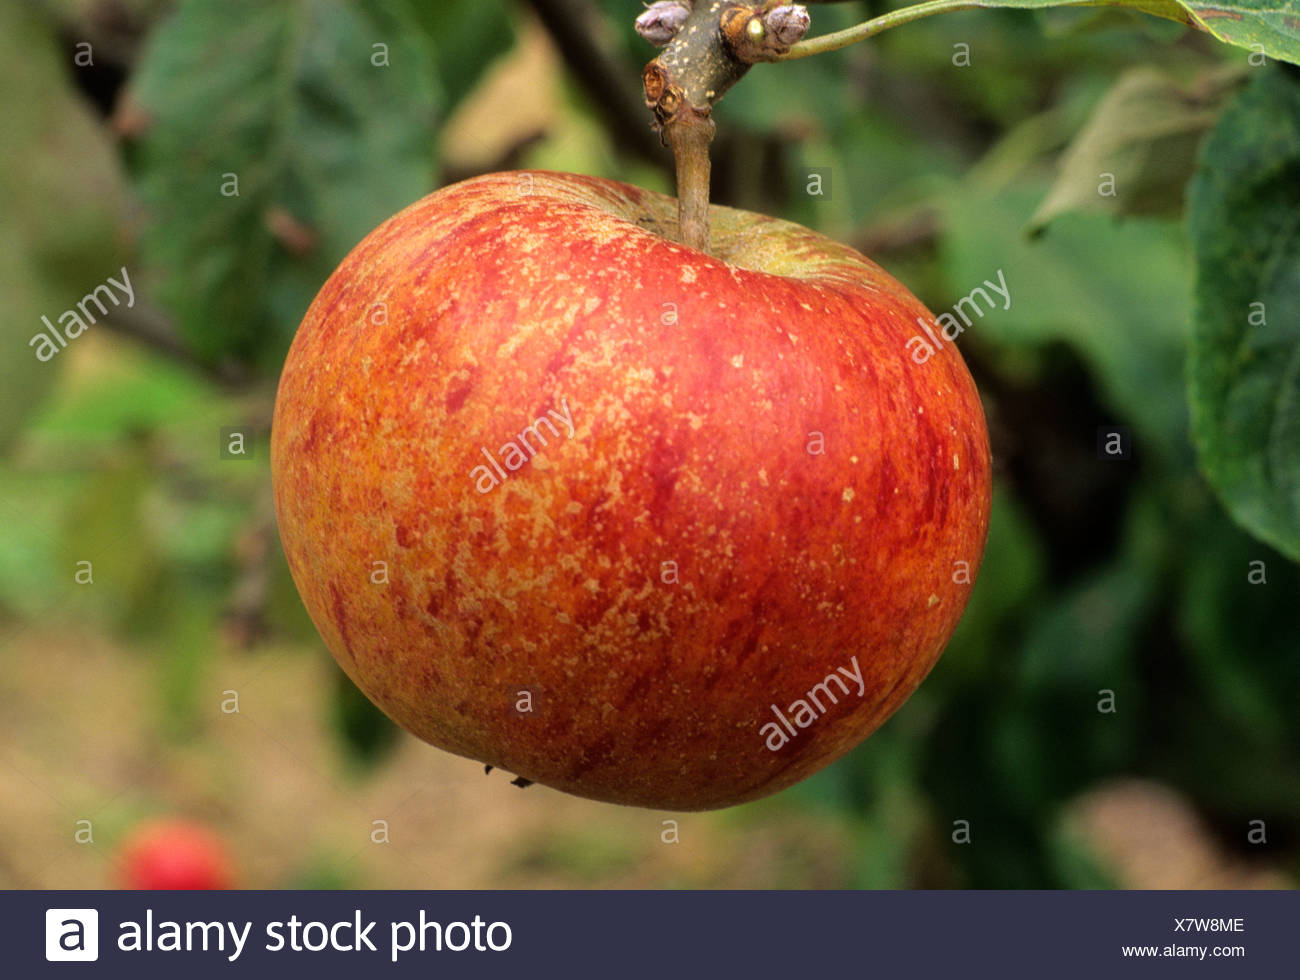 Apple Cox's Orange Pippin variety varieties fruit apples growing on tree, healthy eating - Stock Image